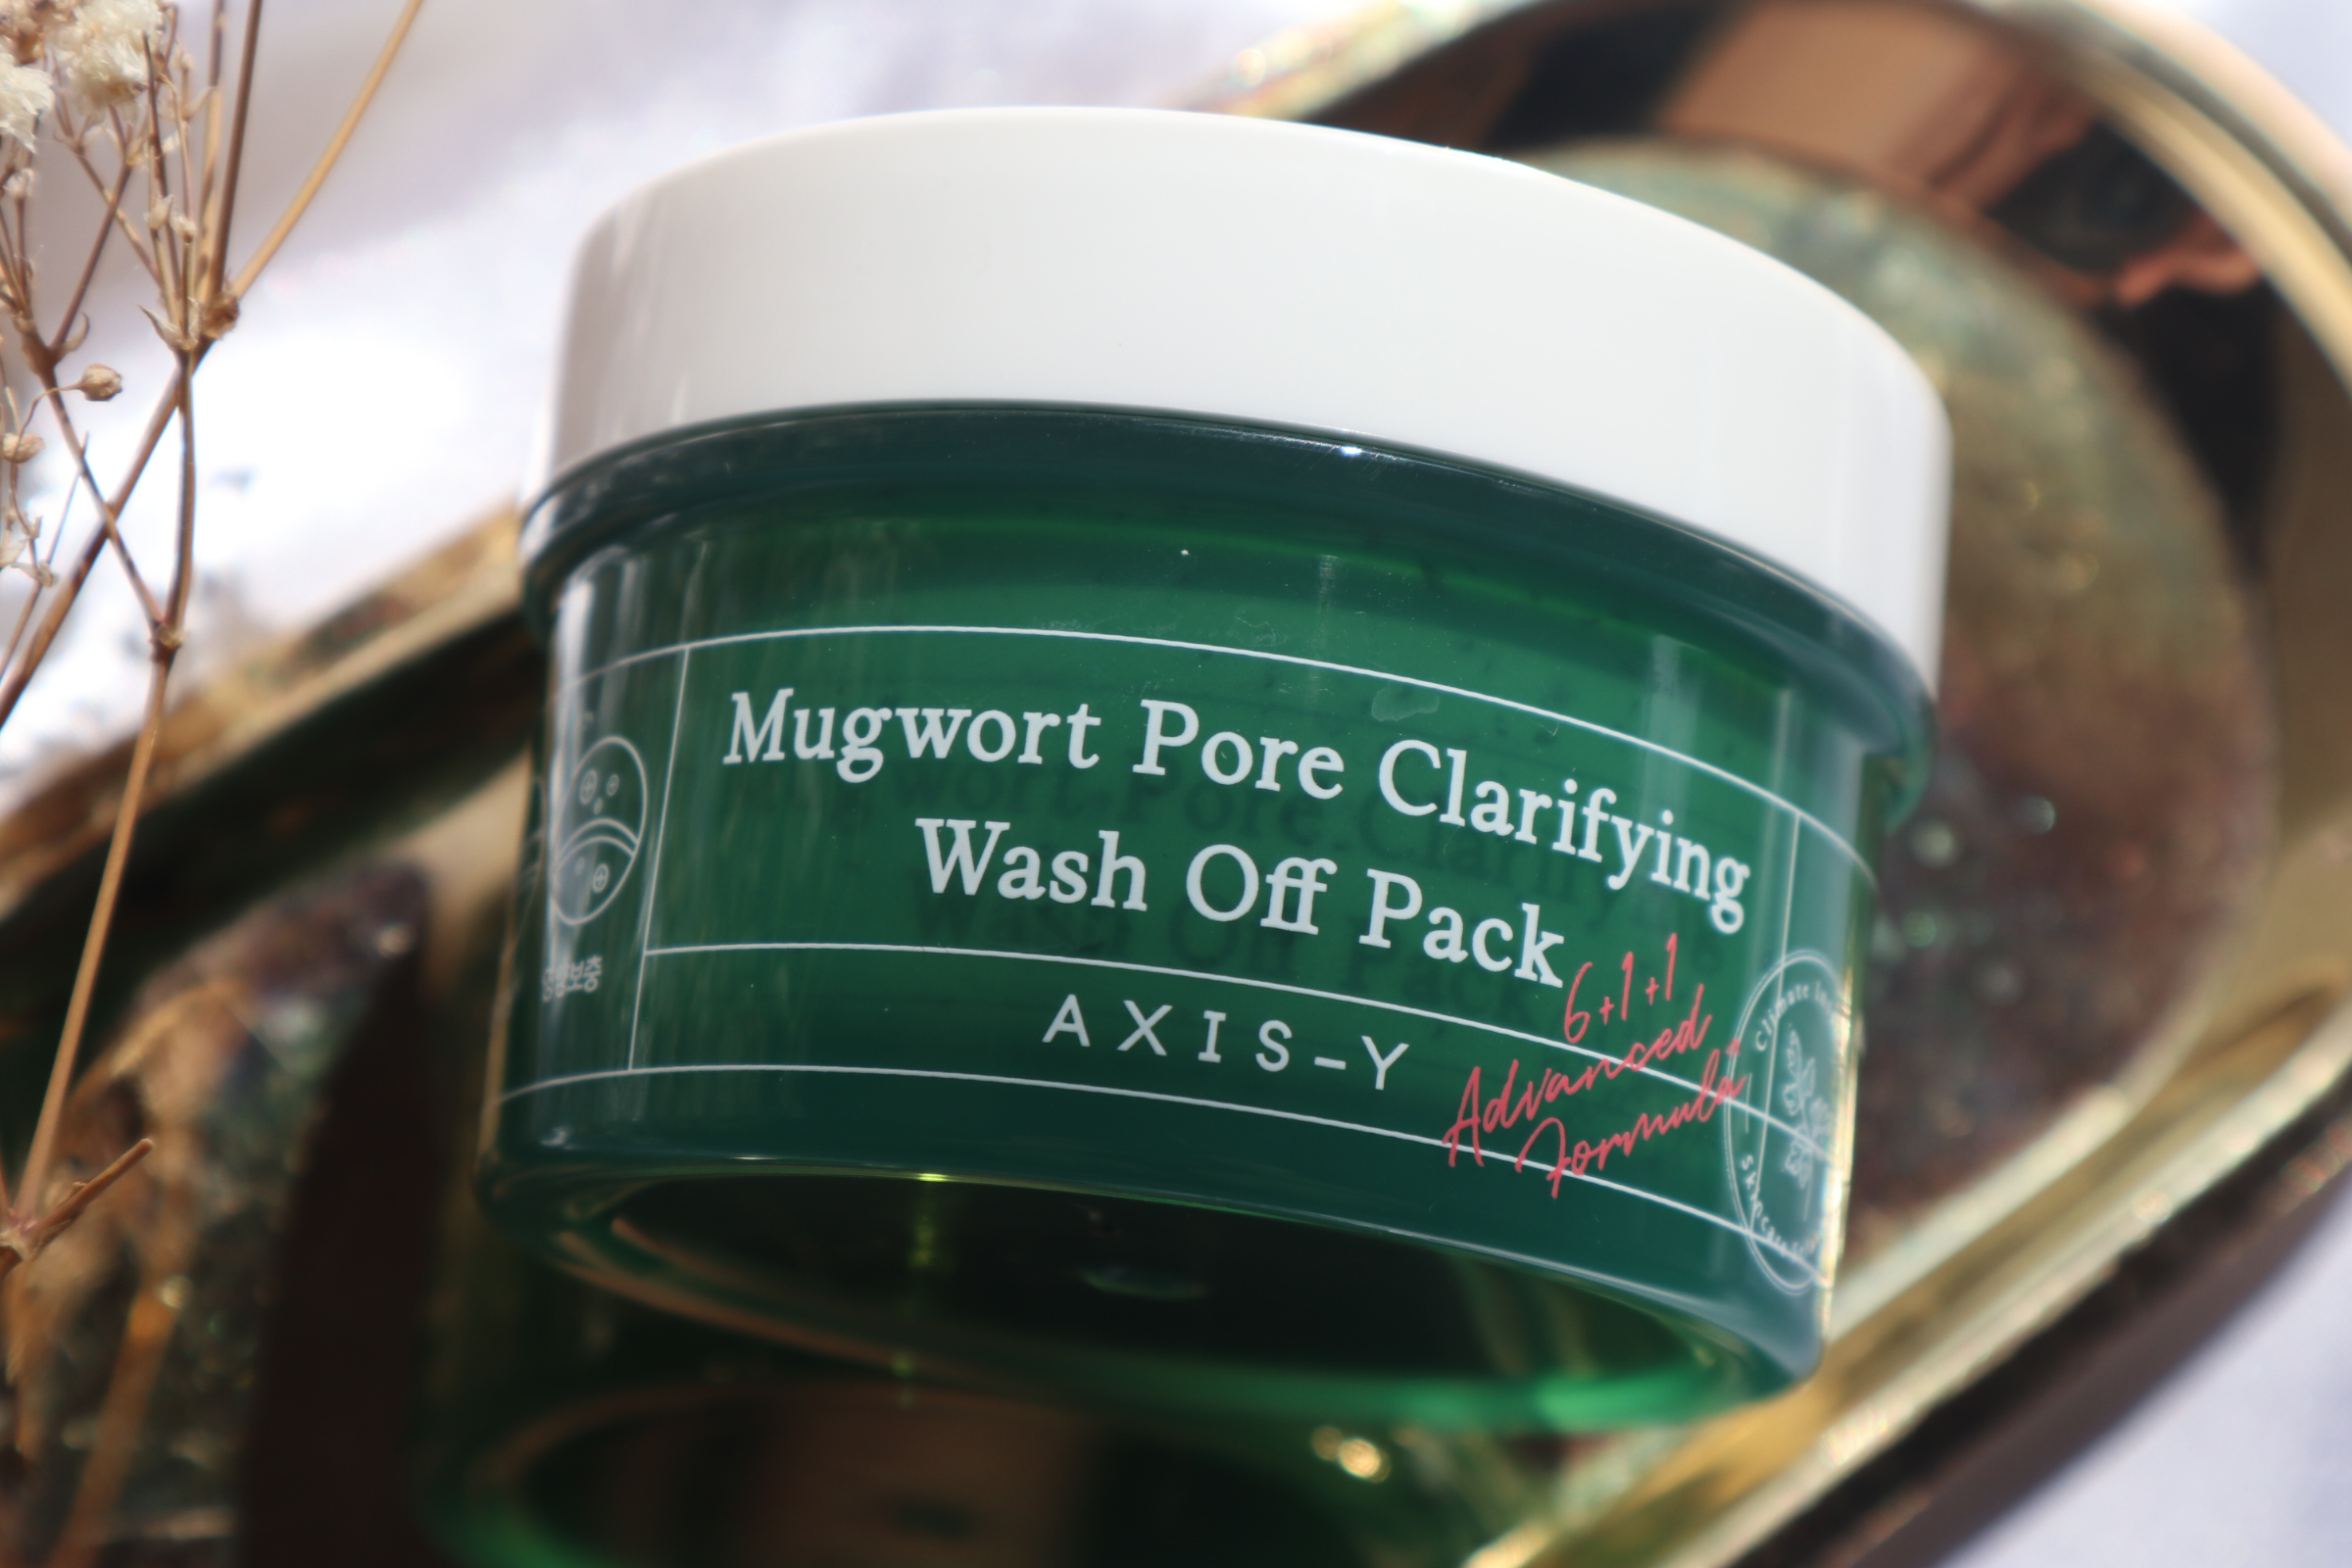 Cooling Wash Off Pack with the Axis-Y Mugwort Pore Clarifying Wash Off Pack